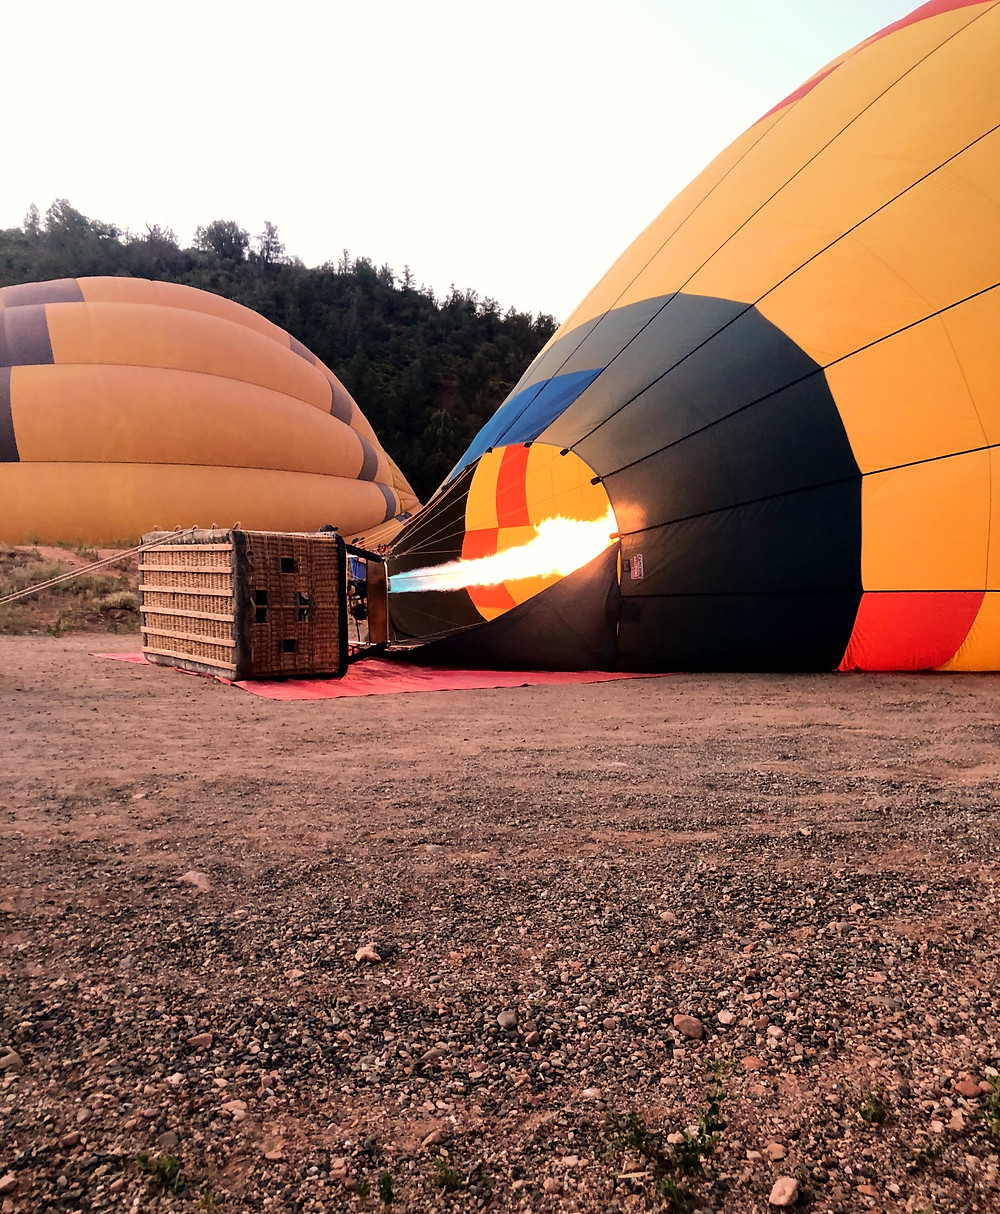 hot air balloon, sky, basket, parachute, fire, balloon